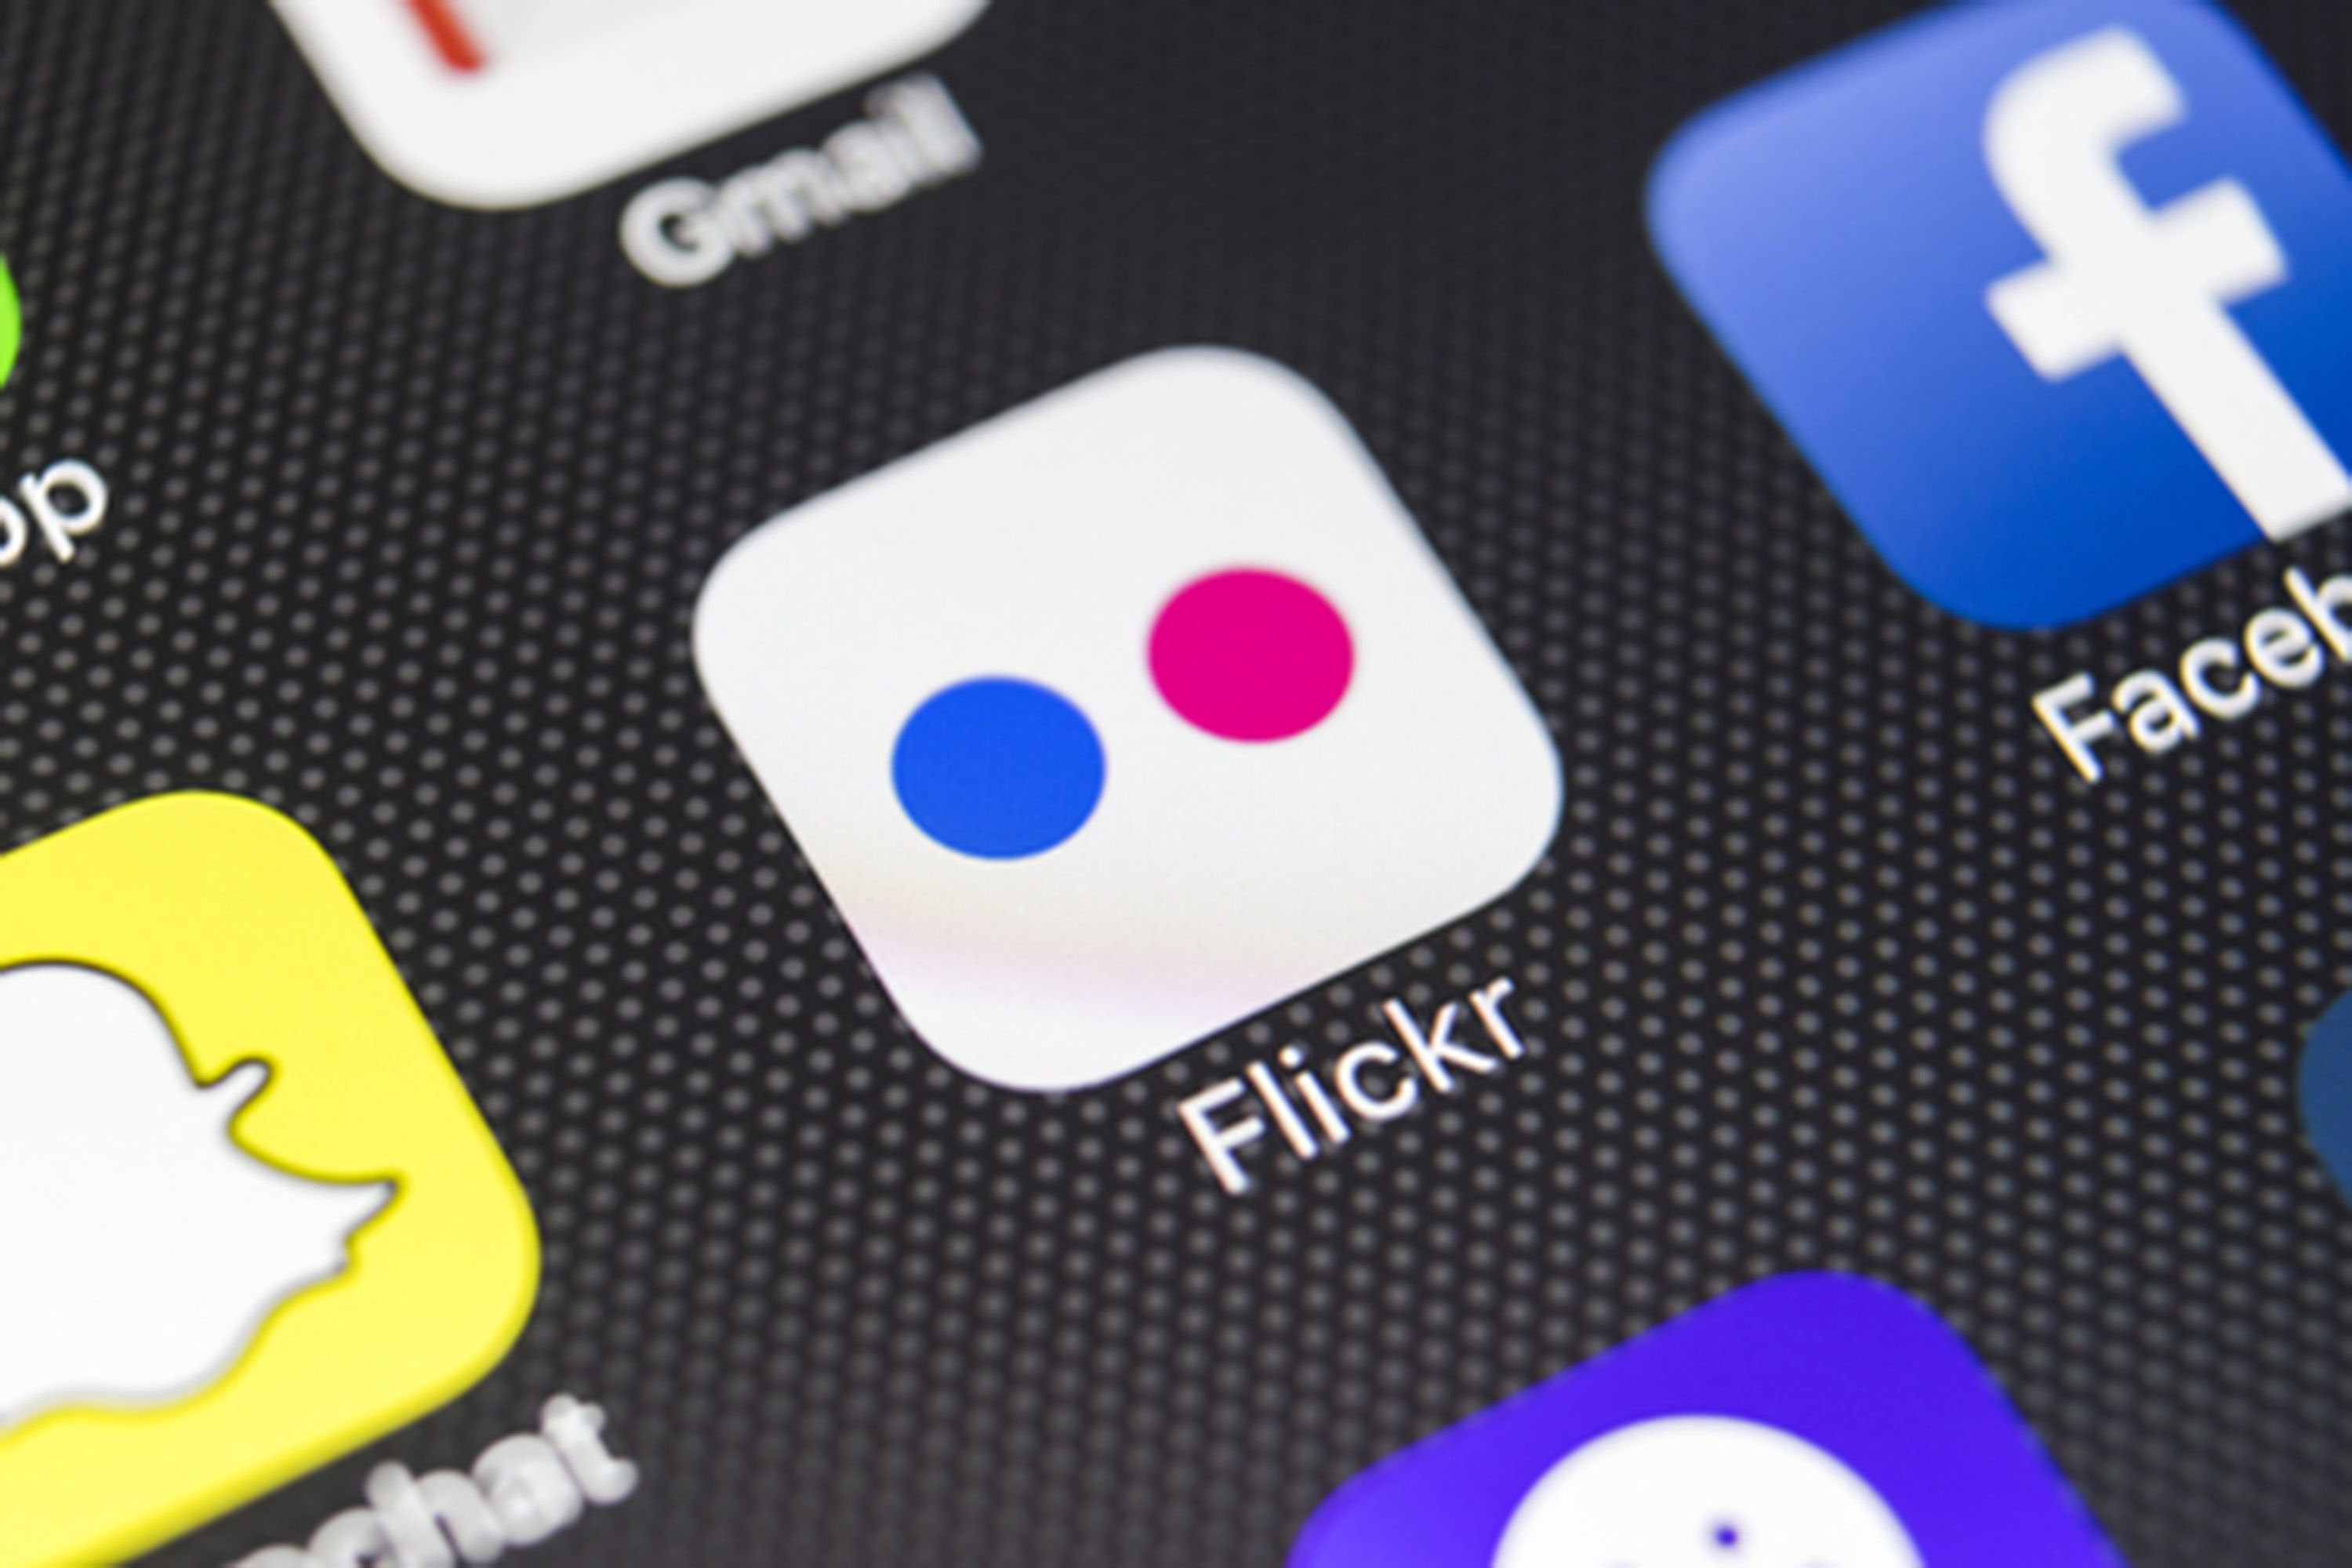 Flickr Pro launches new copyright tool to stop image theft